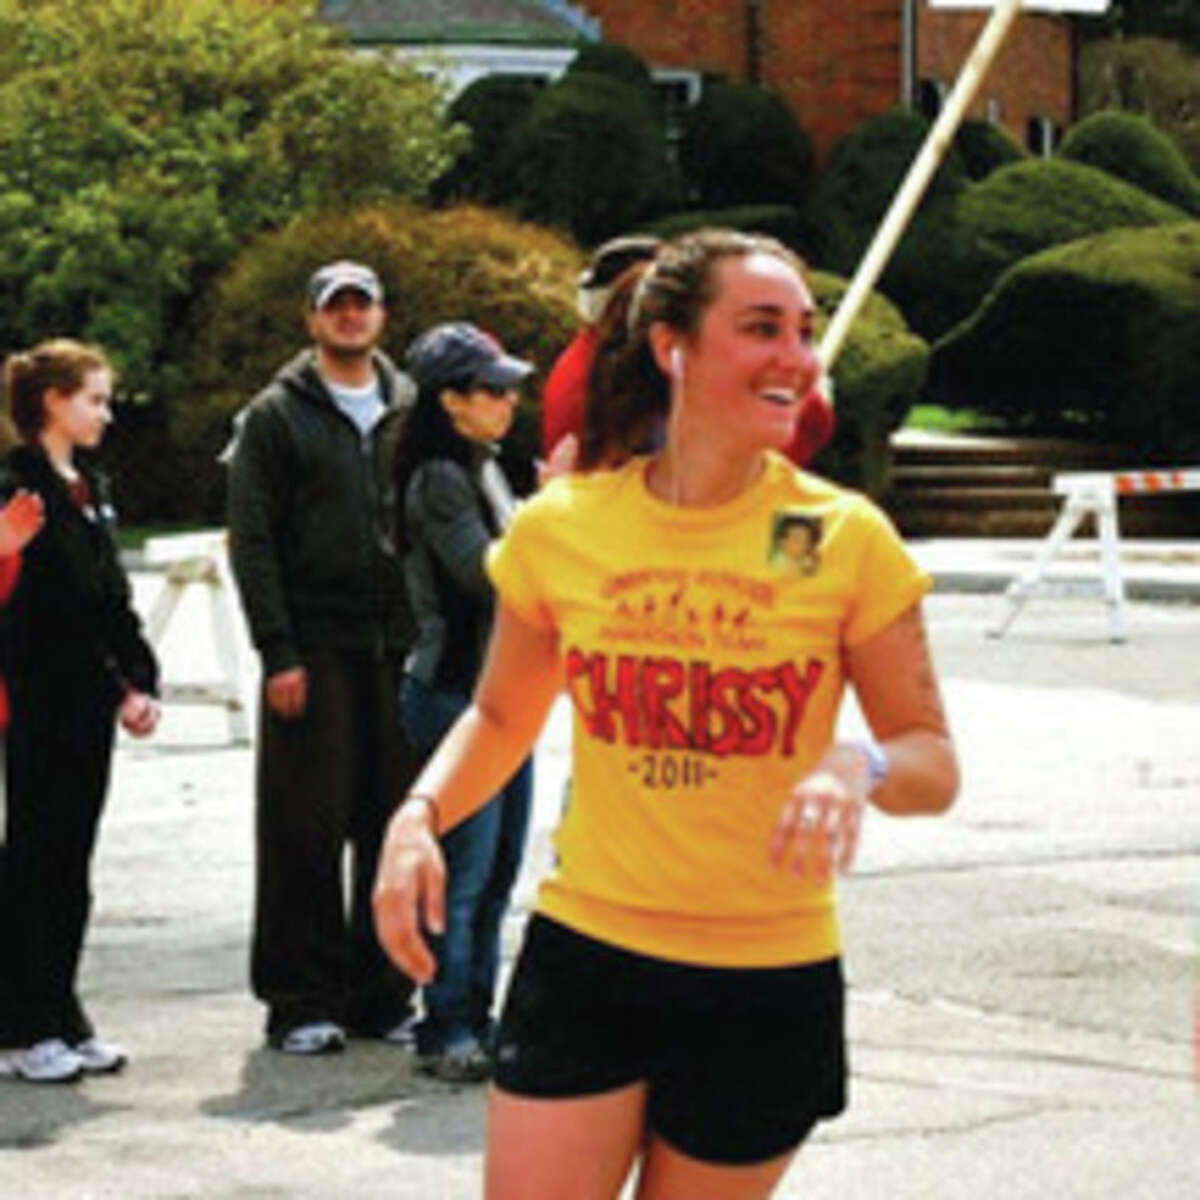 Contributed photo Christine Suchy of Wilton, running near Heartbreak Hill during the Boston Marathon, will compete in the San Francisco Marathon on July 29 to benefit the memory of two friends.